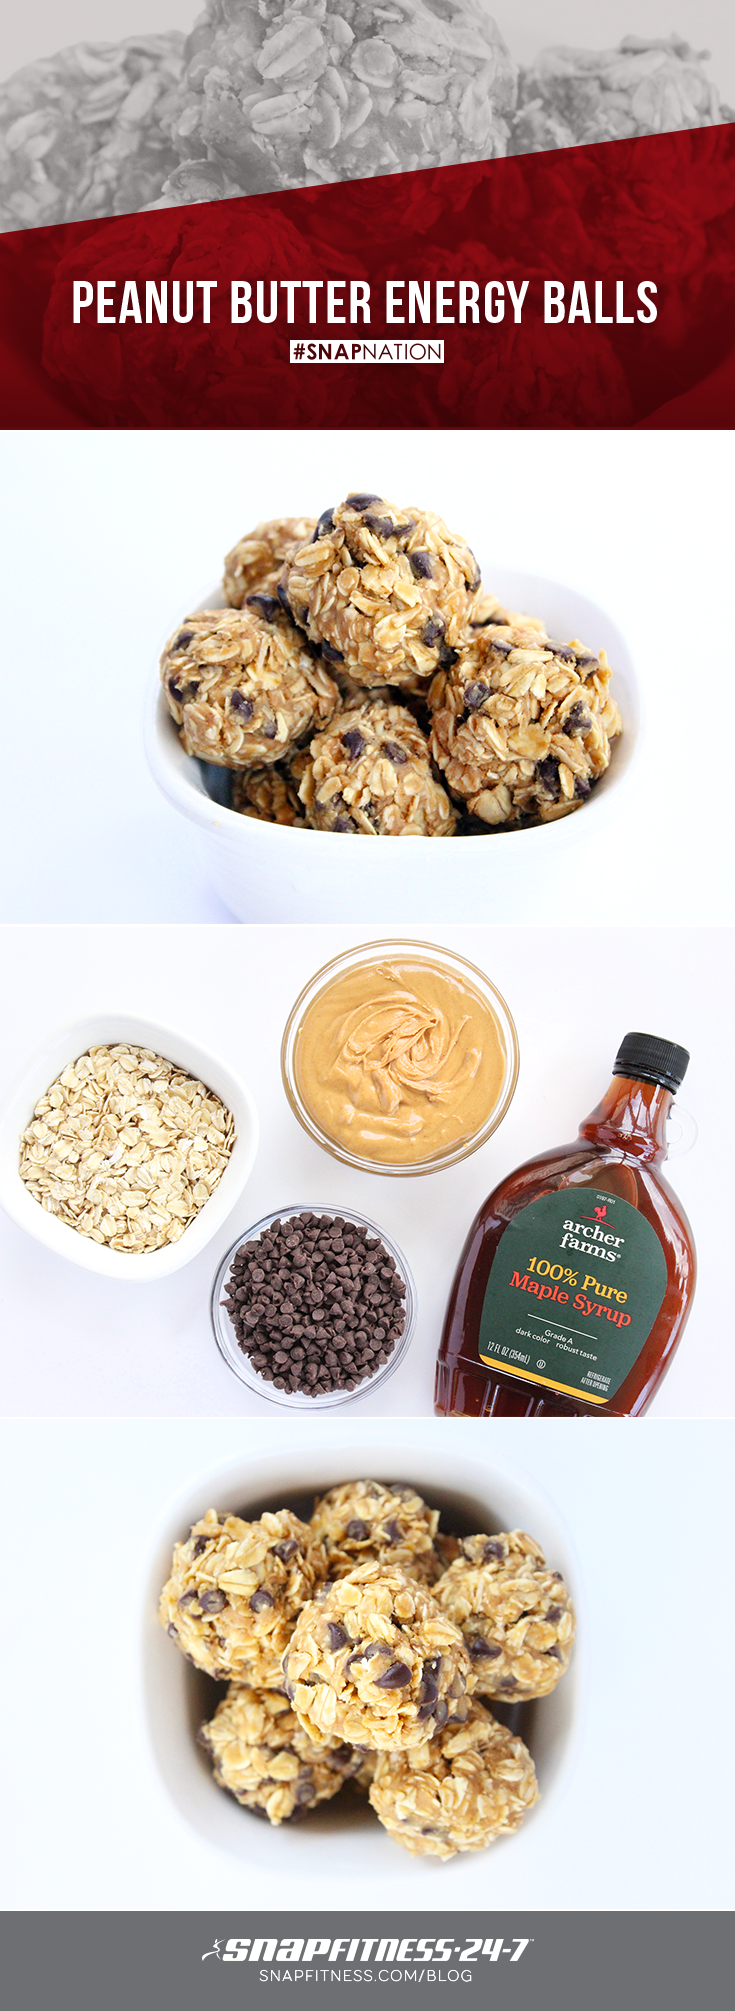 It's official: The search for the perfect protein ball recipe is over! These chocolate chip oatmeal energy balls are the perfect mix of healthy and heavenly. You can thank us later.